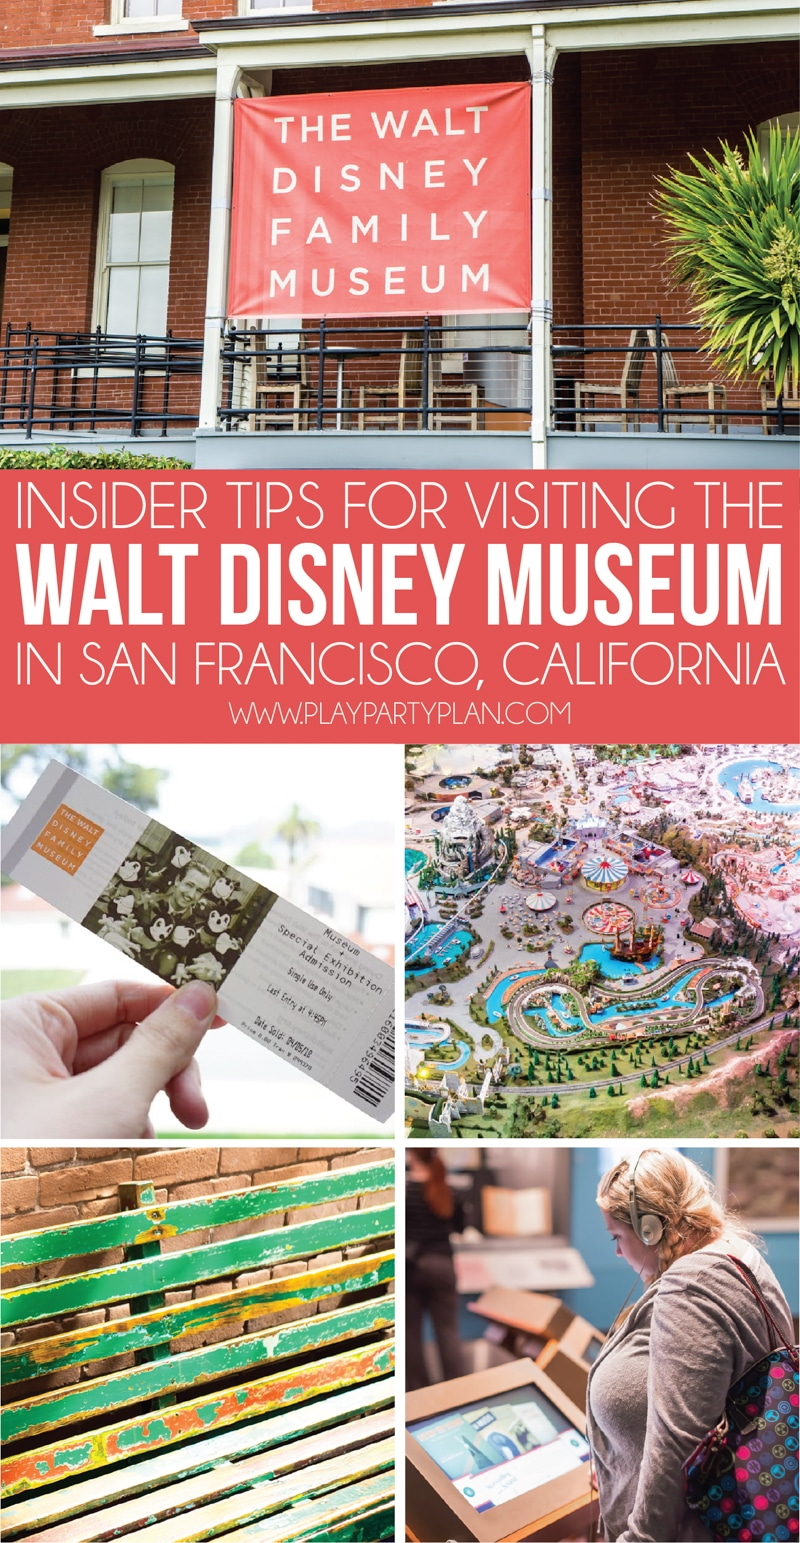 Reasons why every Disney fans need the Walt Disney Family Museum in San Francisco on their bucket list! Everything from a miniature Disneyland model to activities for families and even the original drawing of Mickey Mouse and awesome Snow White paper dolls! There's so much for everyone whether you're a Disney World or Disneyland fan!